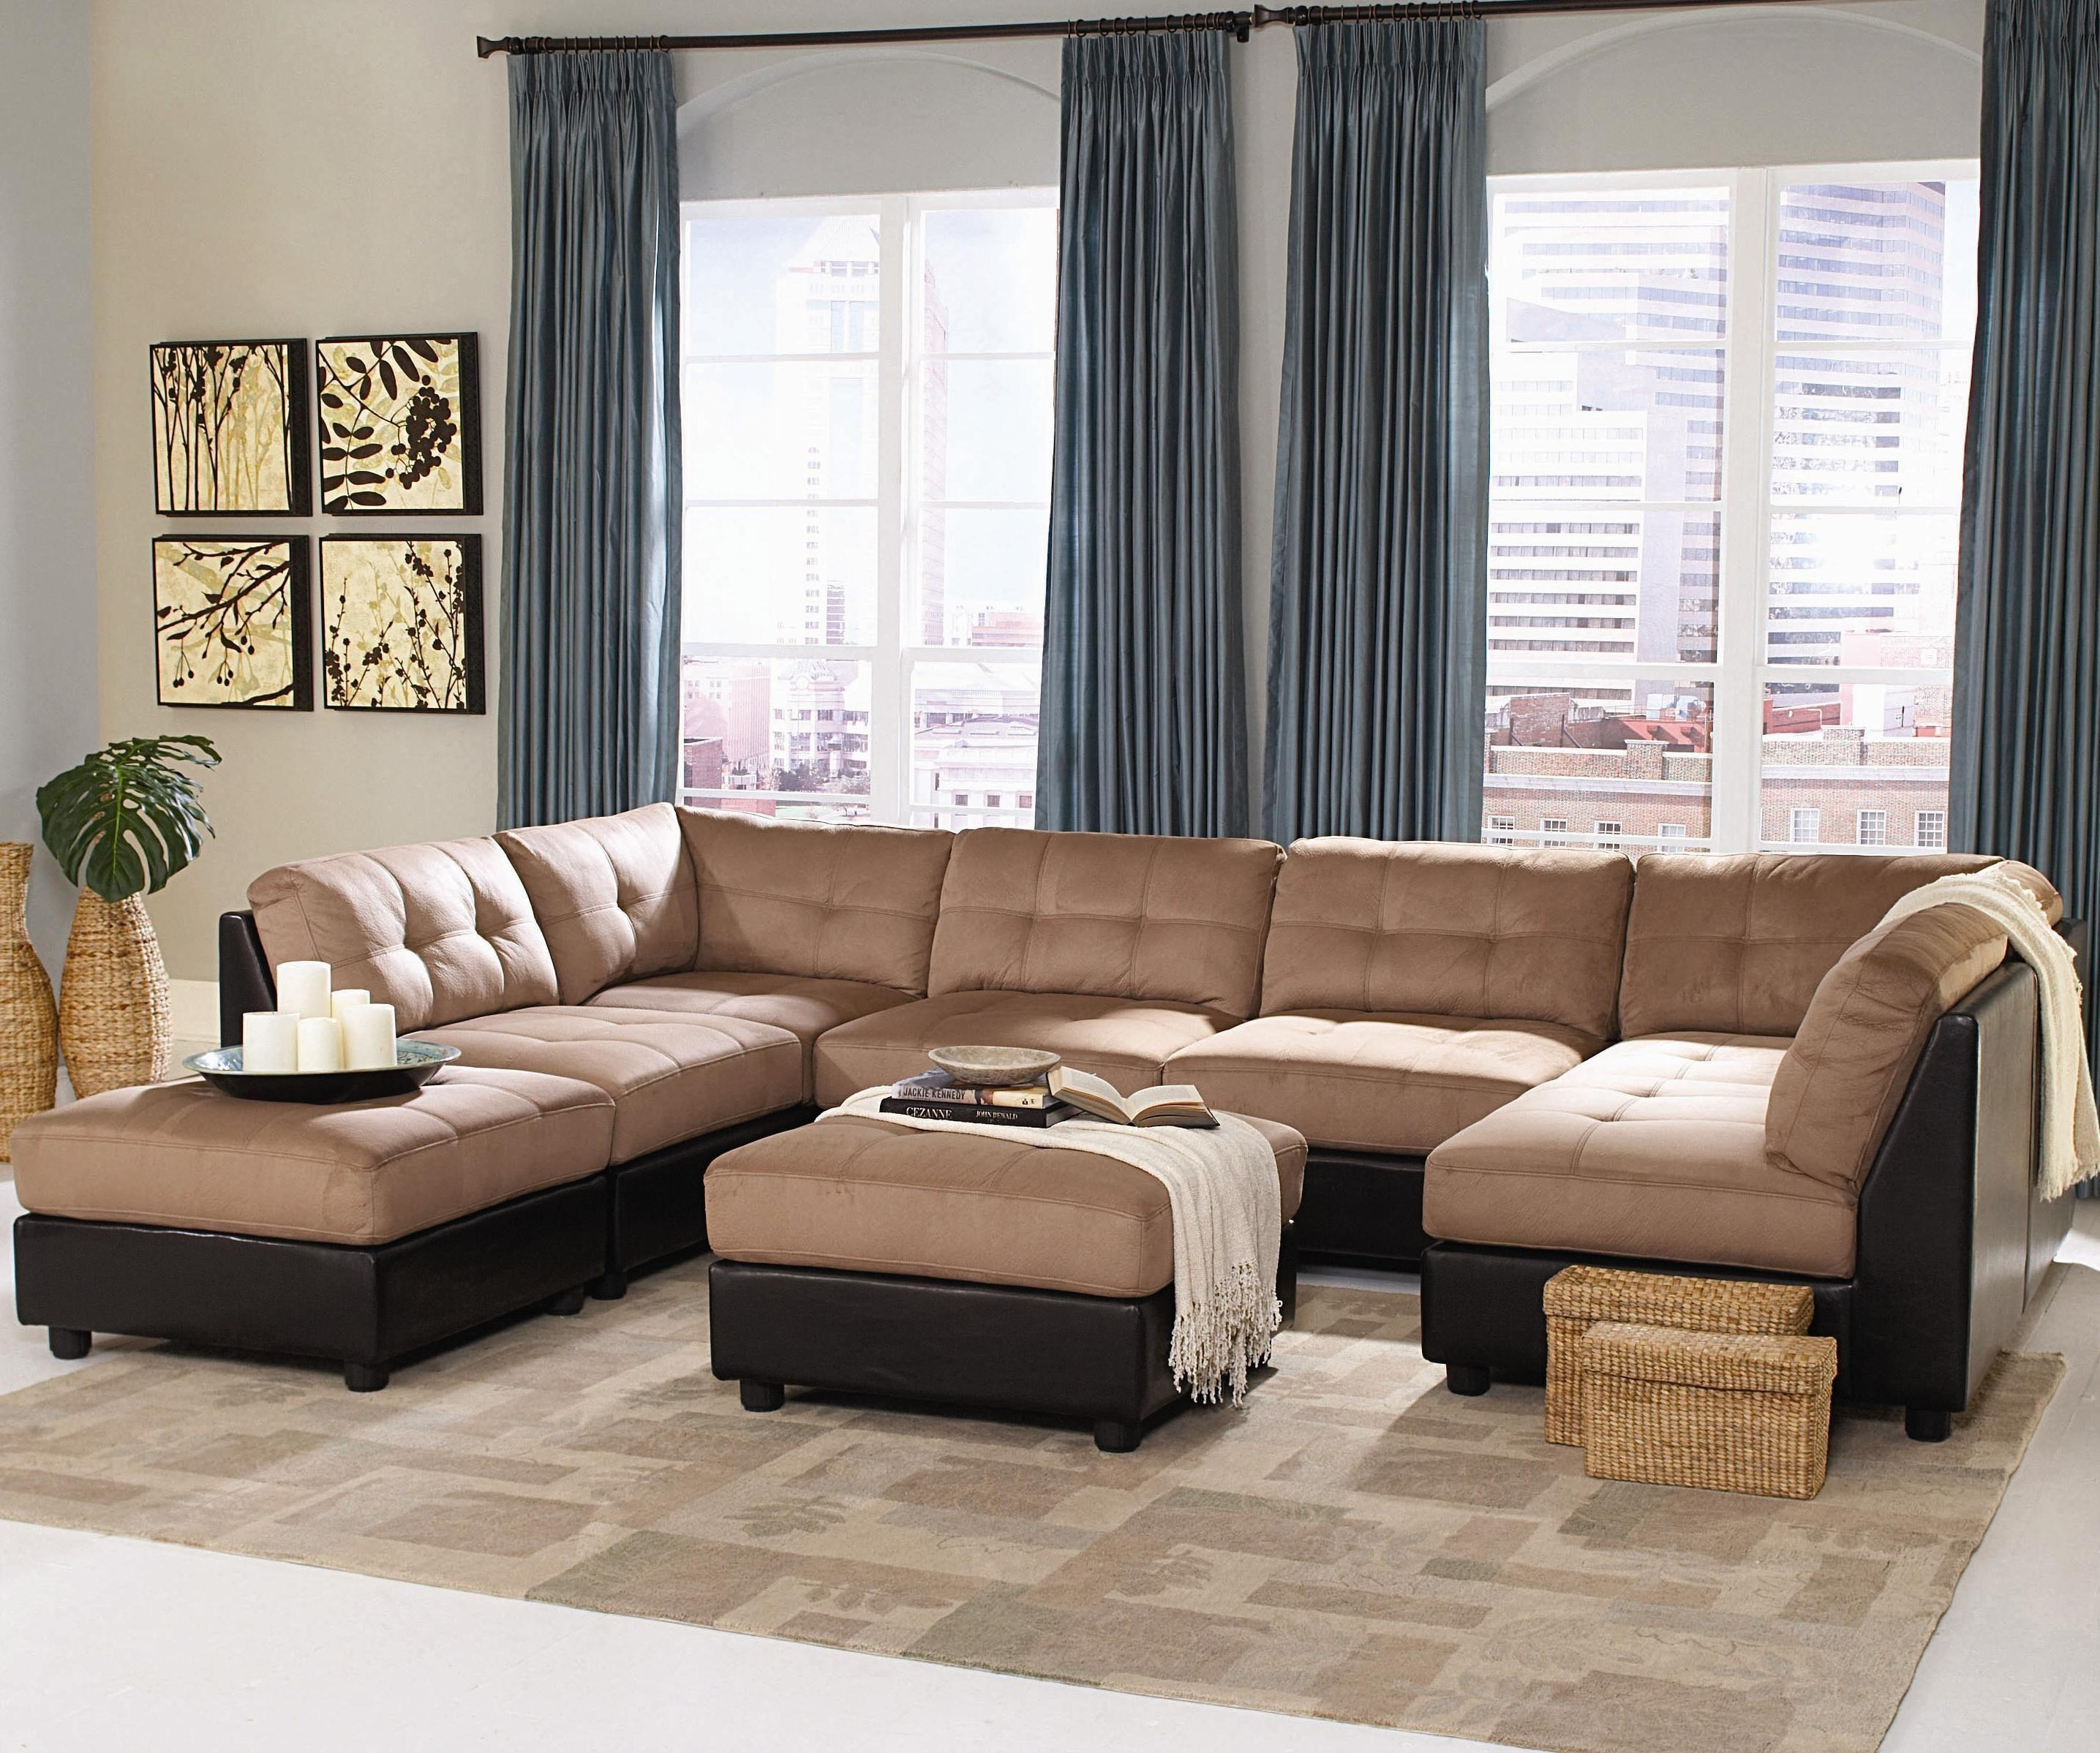 Furniture Home: The Most Popular Sears Sectional Sofa 53 With For Modern Microfiber Sectional Sofa (Image 10 of 20)